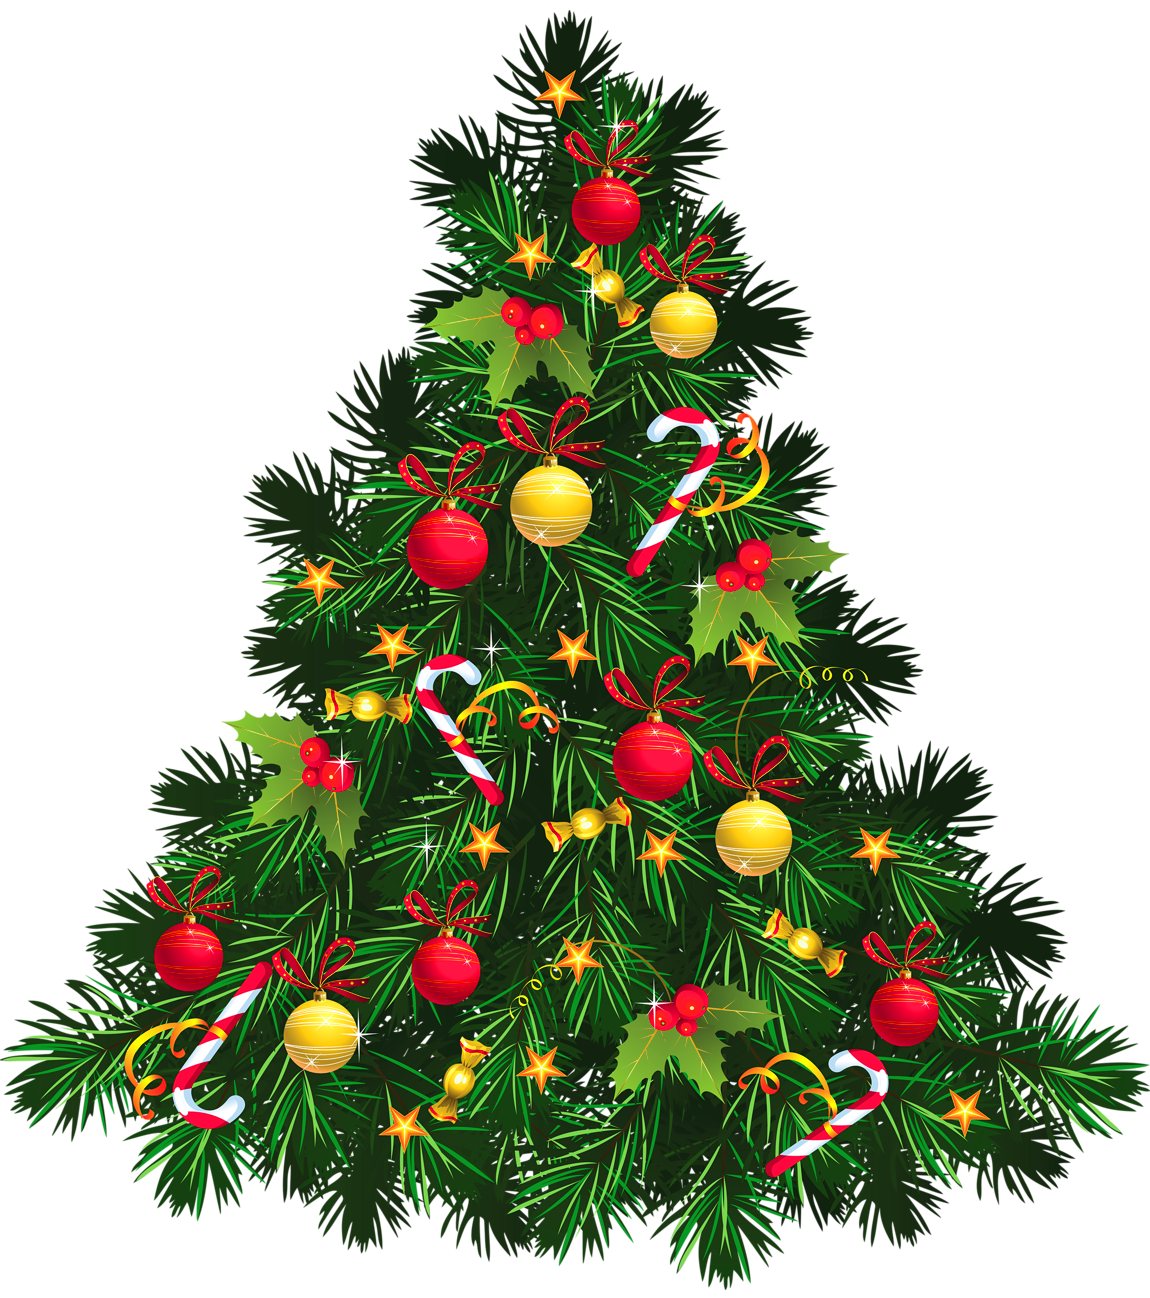 Christmas Tree Clip Art Large Christmas Tree Clipart Christmas Tree Images Christmas Tree Pictures